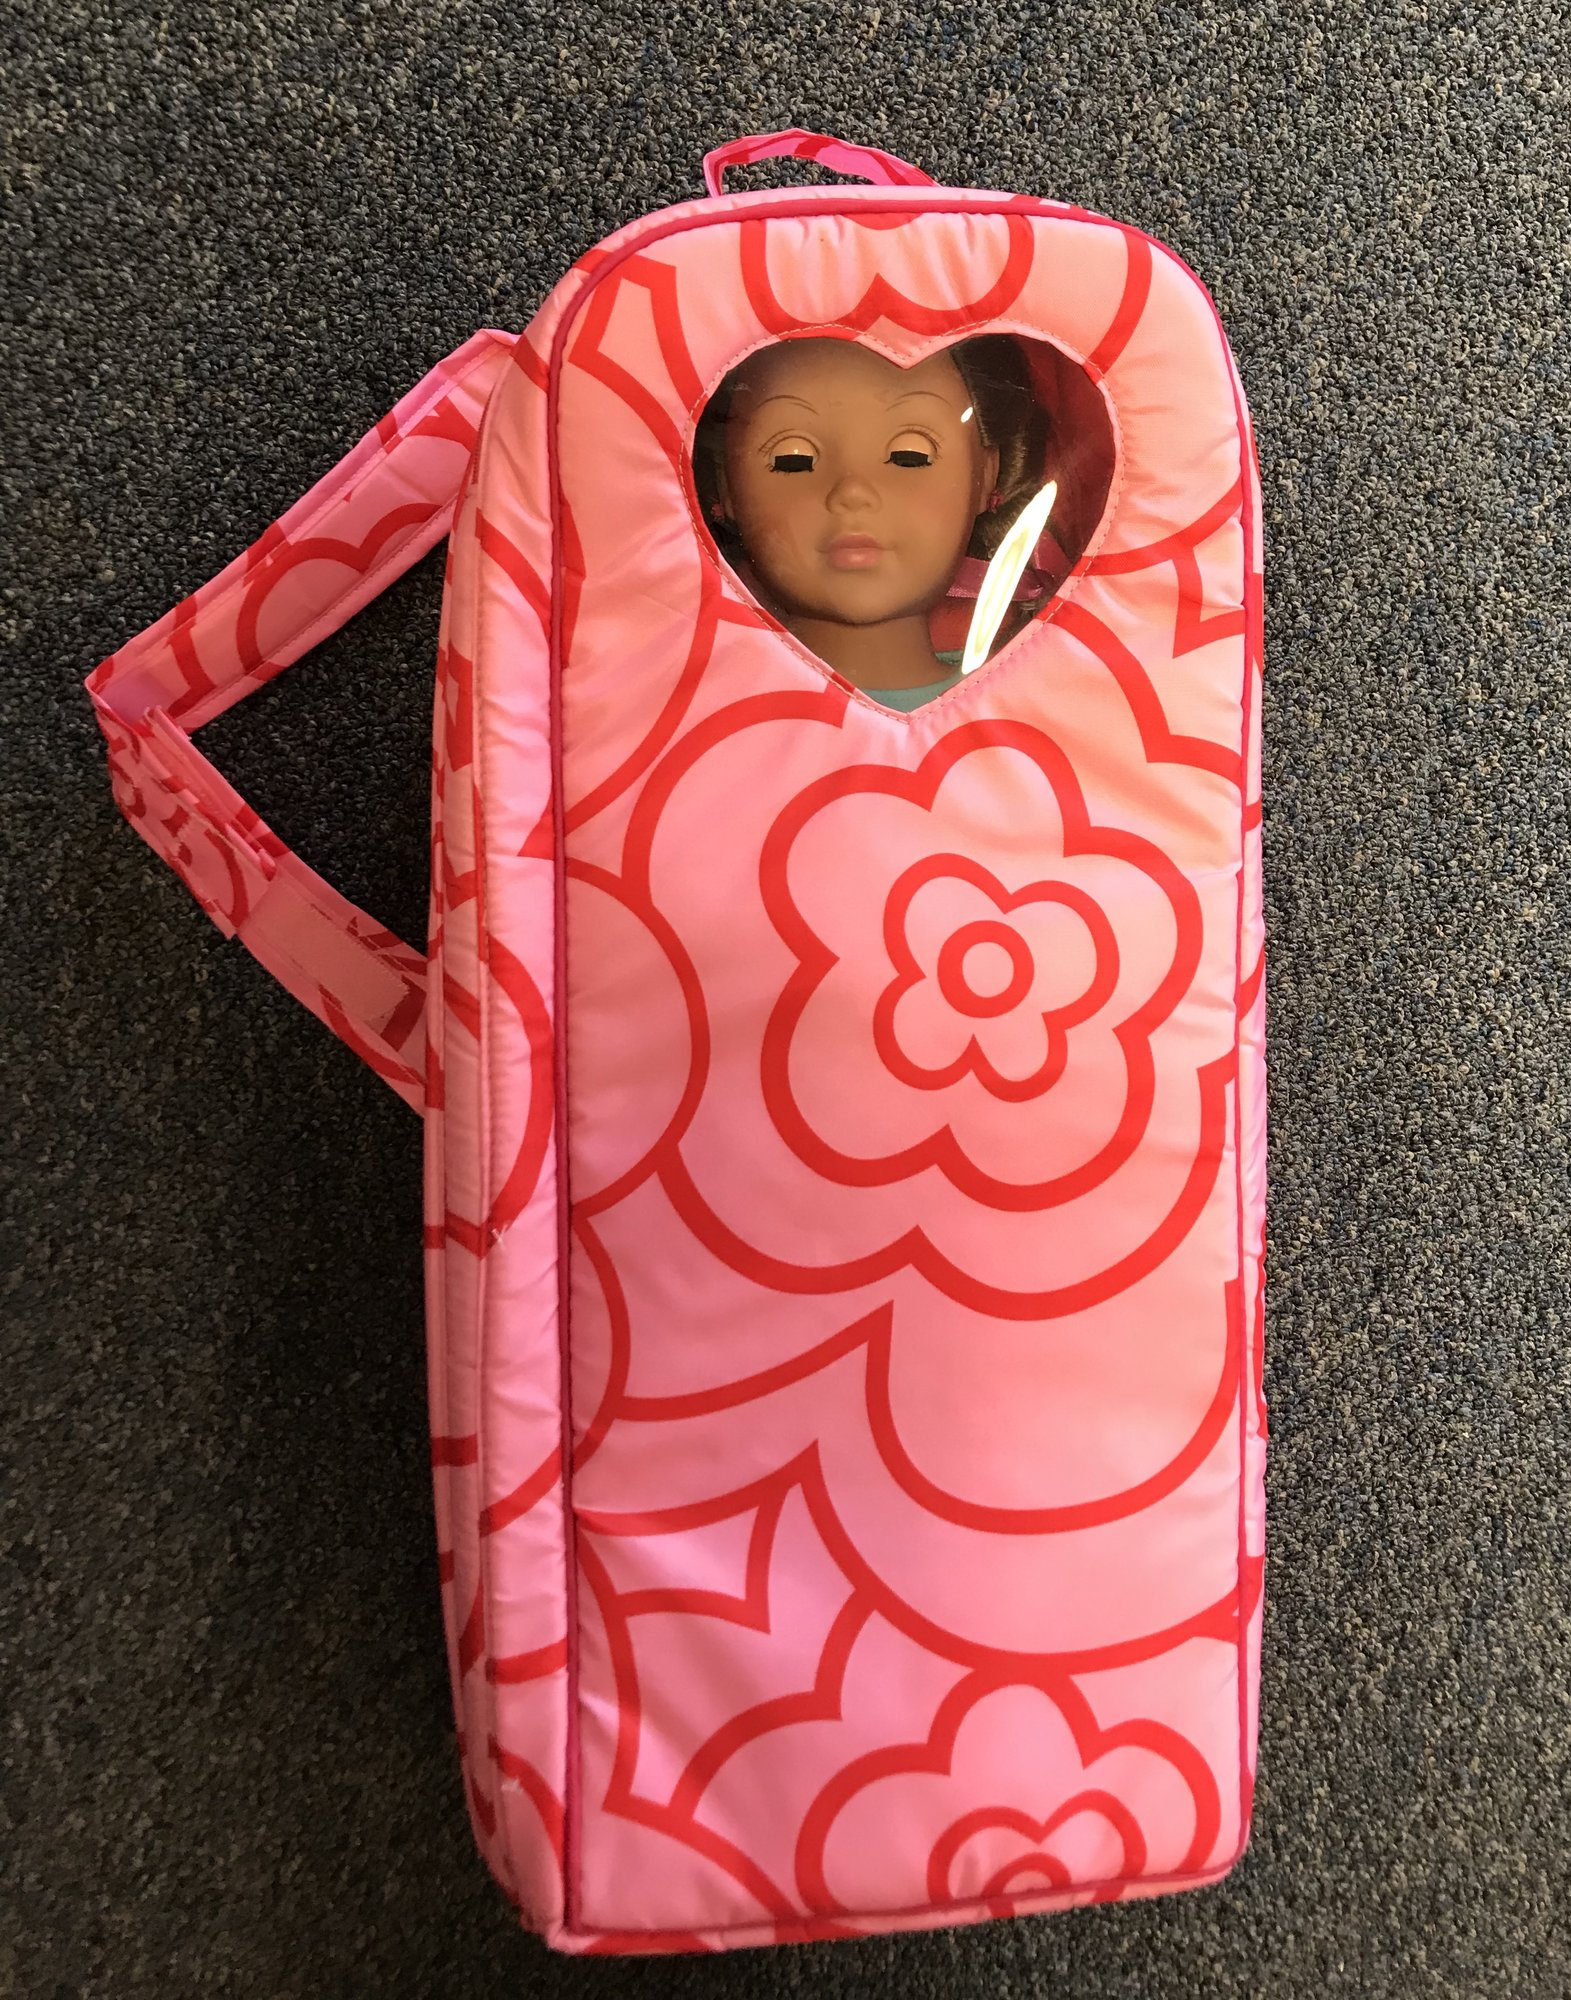 Our Gereration Doll W backpack type case and outfit.  Comes with a brush and dog.  Excellent condition. NO SHIPPING-in store pick up only.